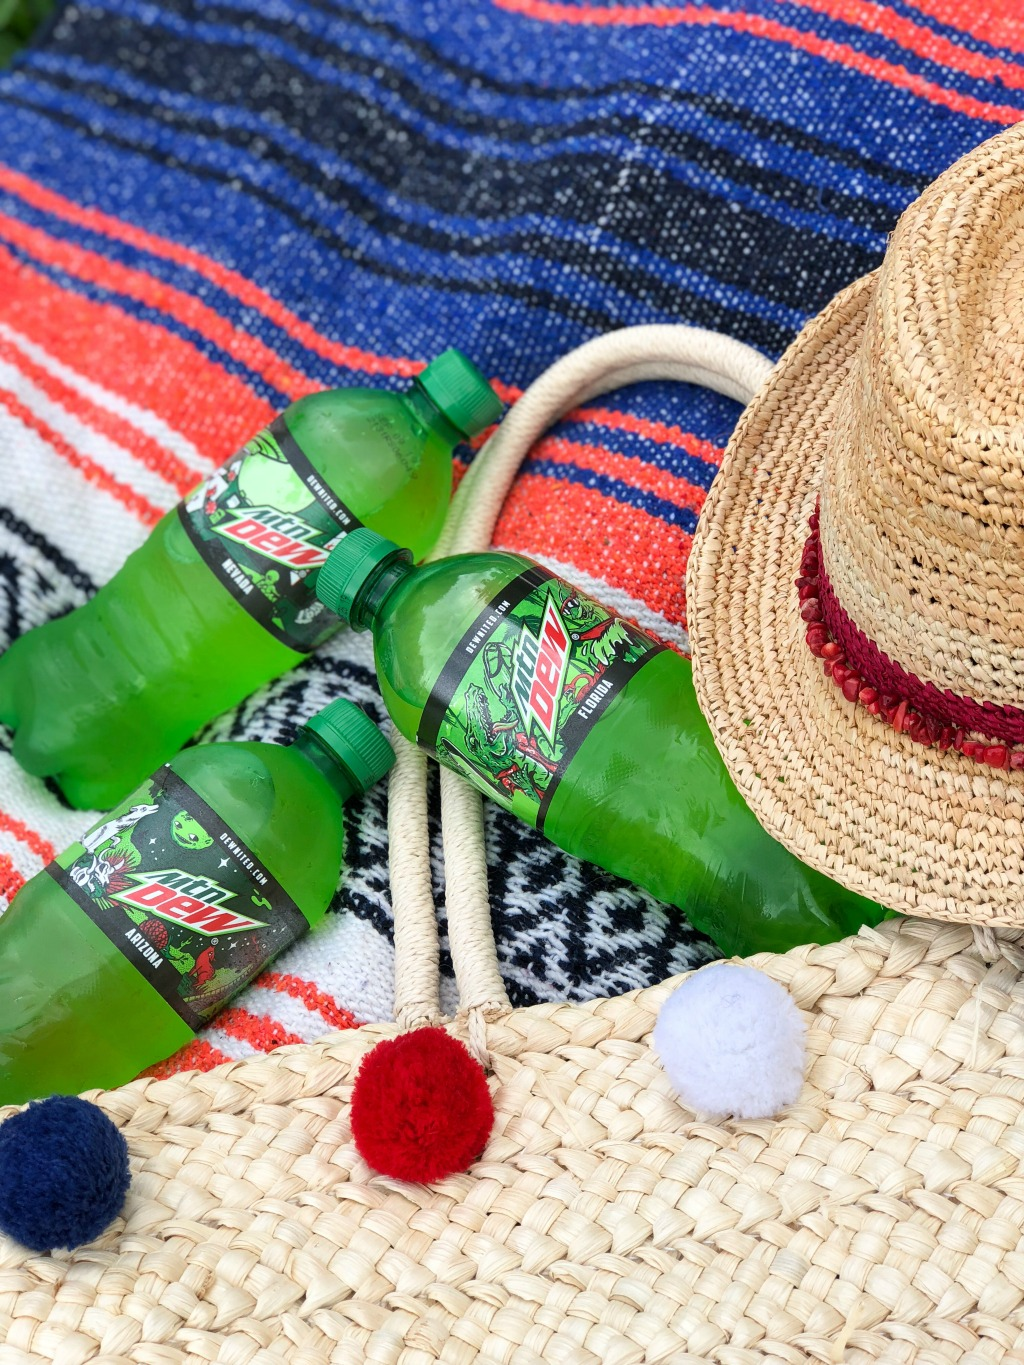 mountain dew bottles on beach blanket